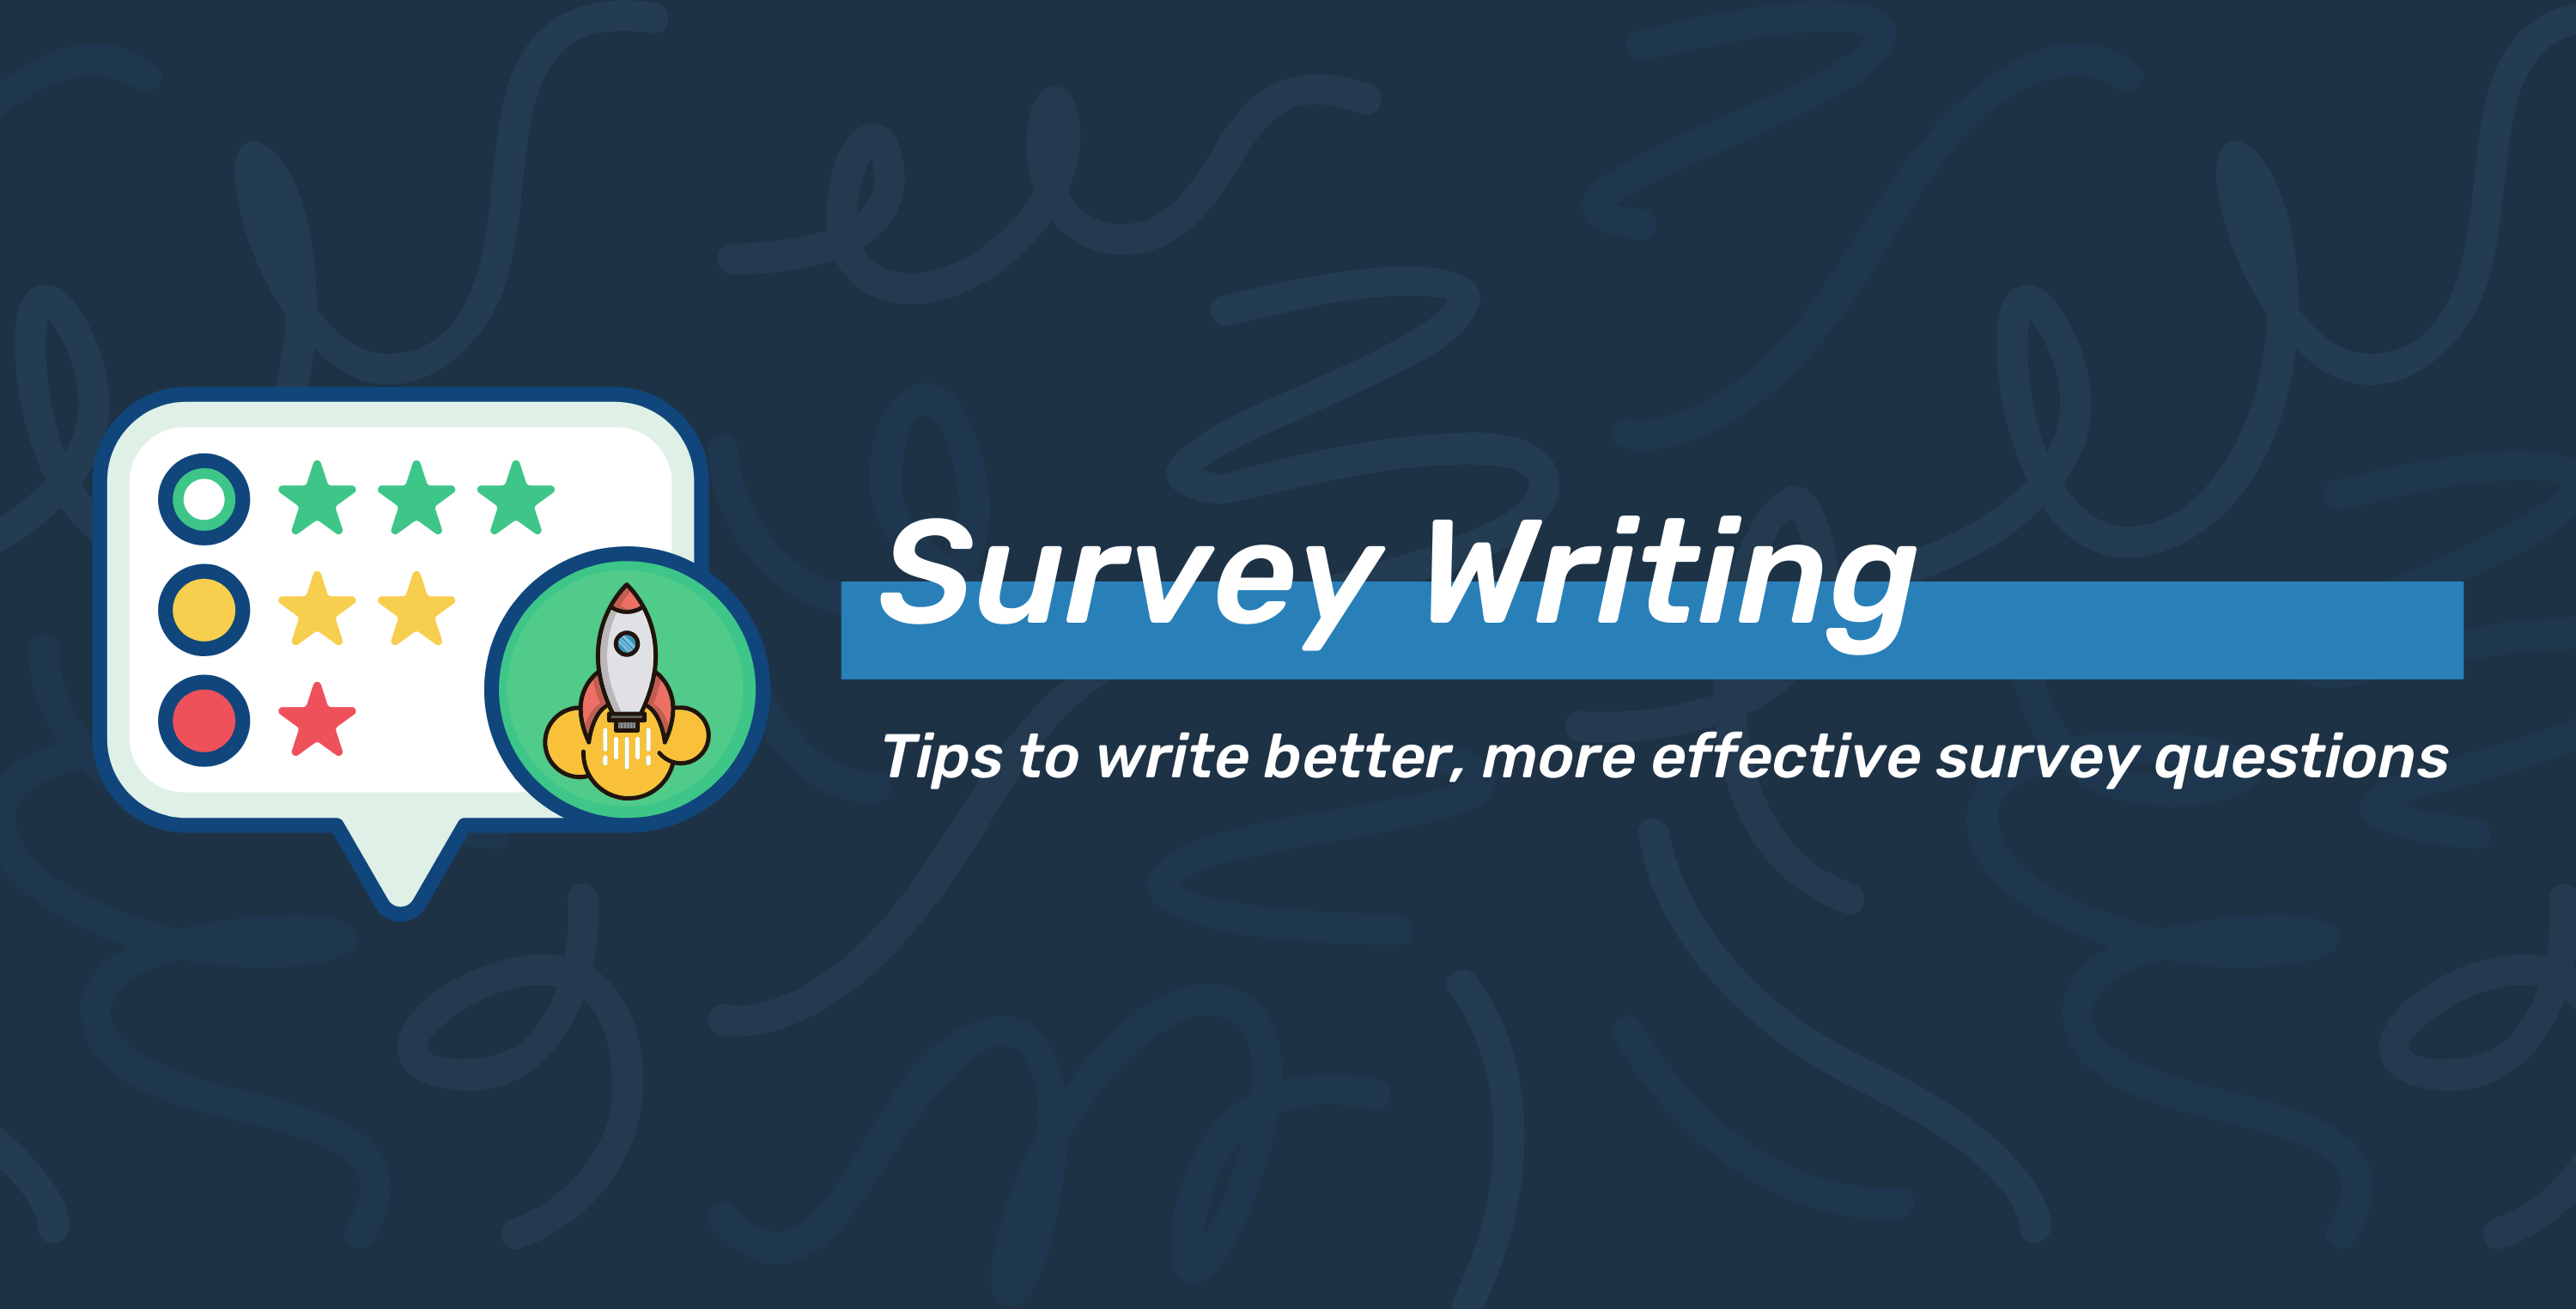 Survey Writing: Write Better, More Effective Survey Questions